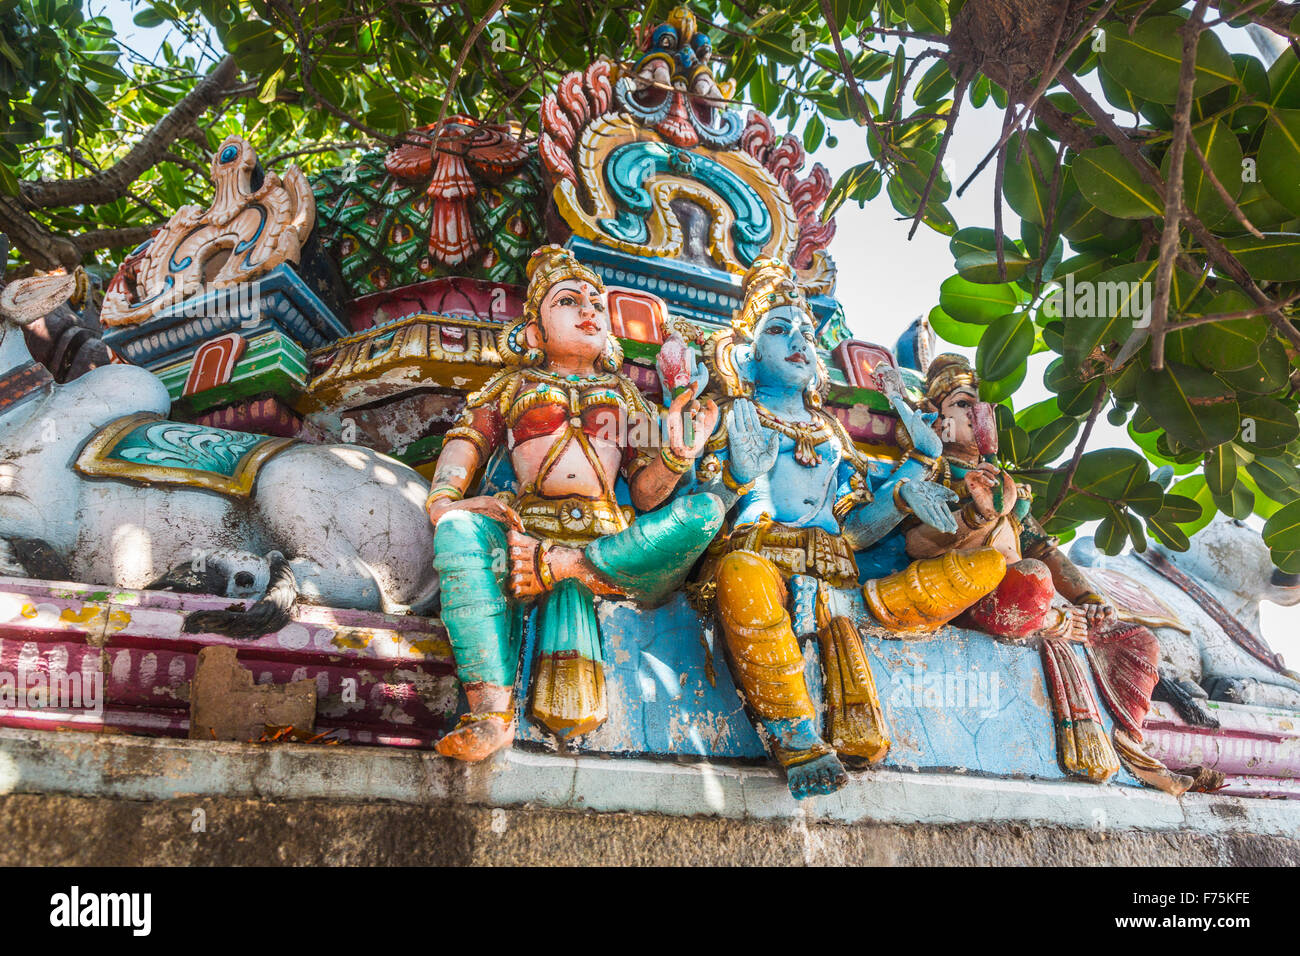 Typical colourful statues of Hindu gods, Kapaleeswarar Temple, a Hindu temple of Shiva located in Mylapore, Chennai, - Stock Image